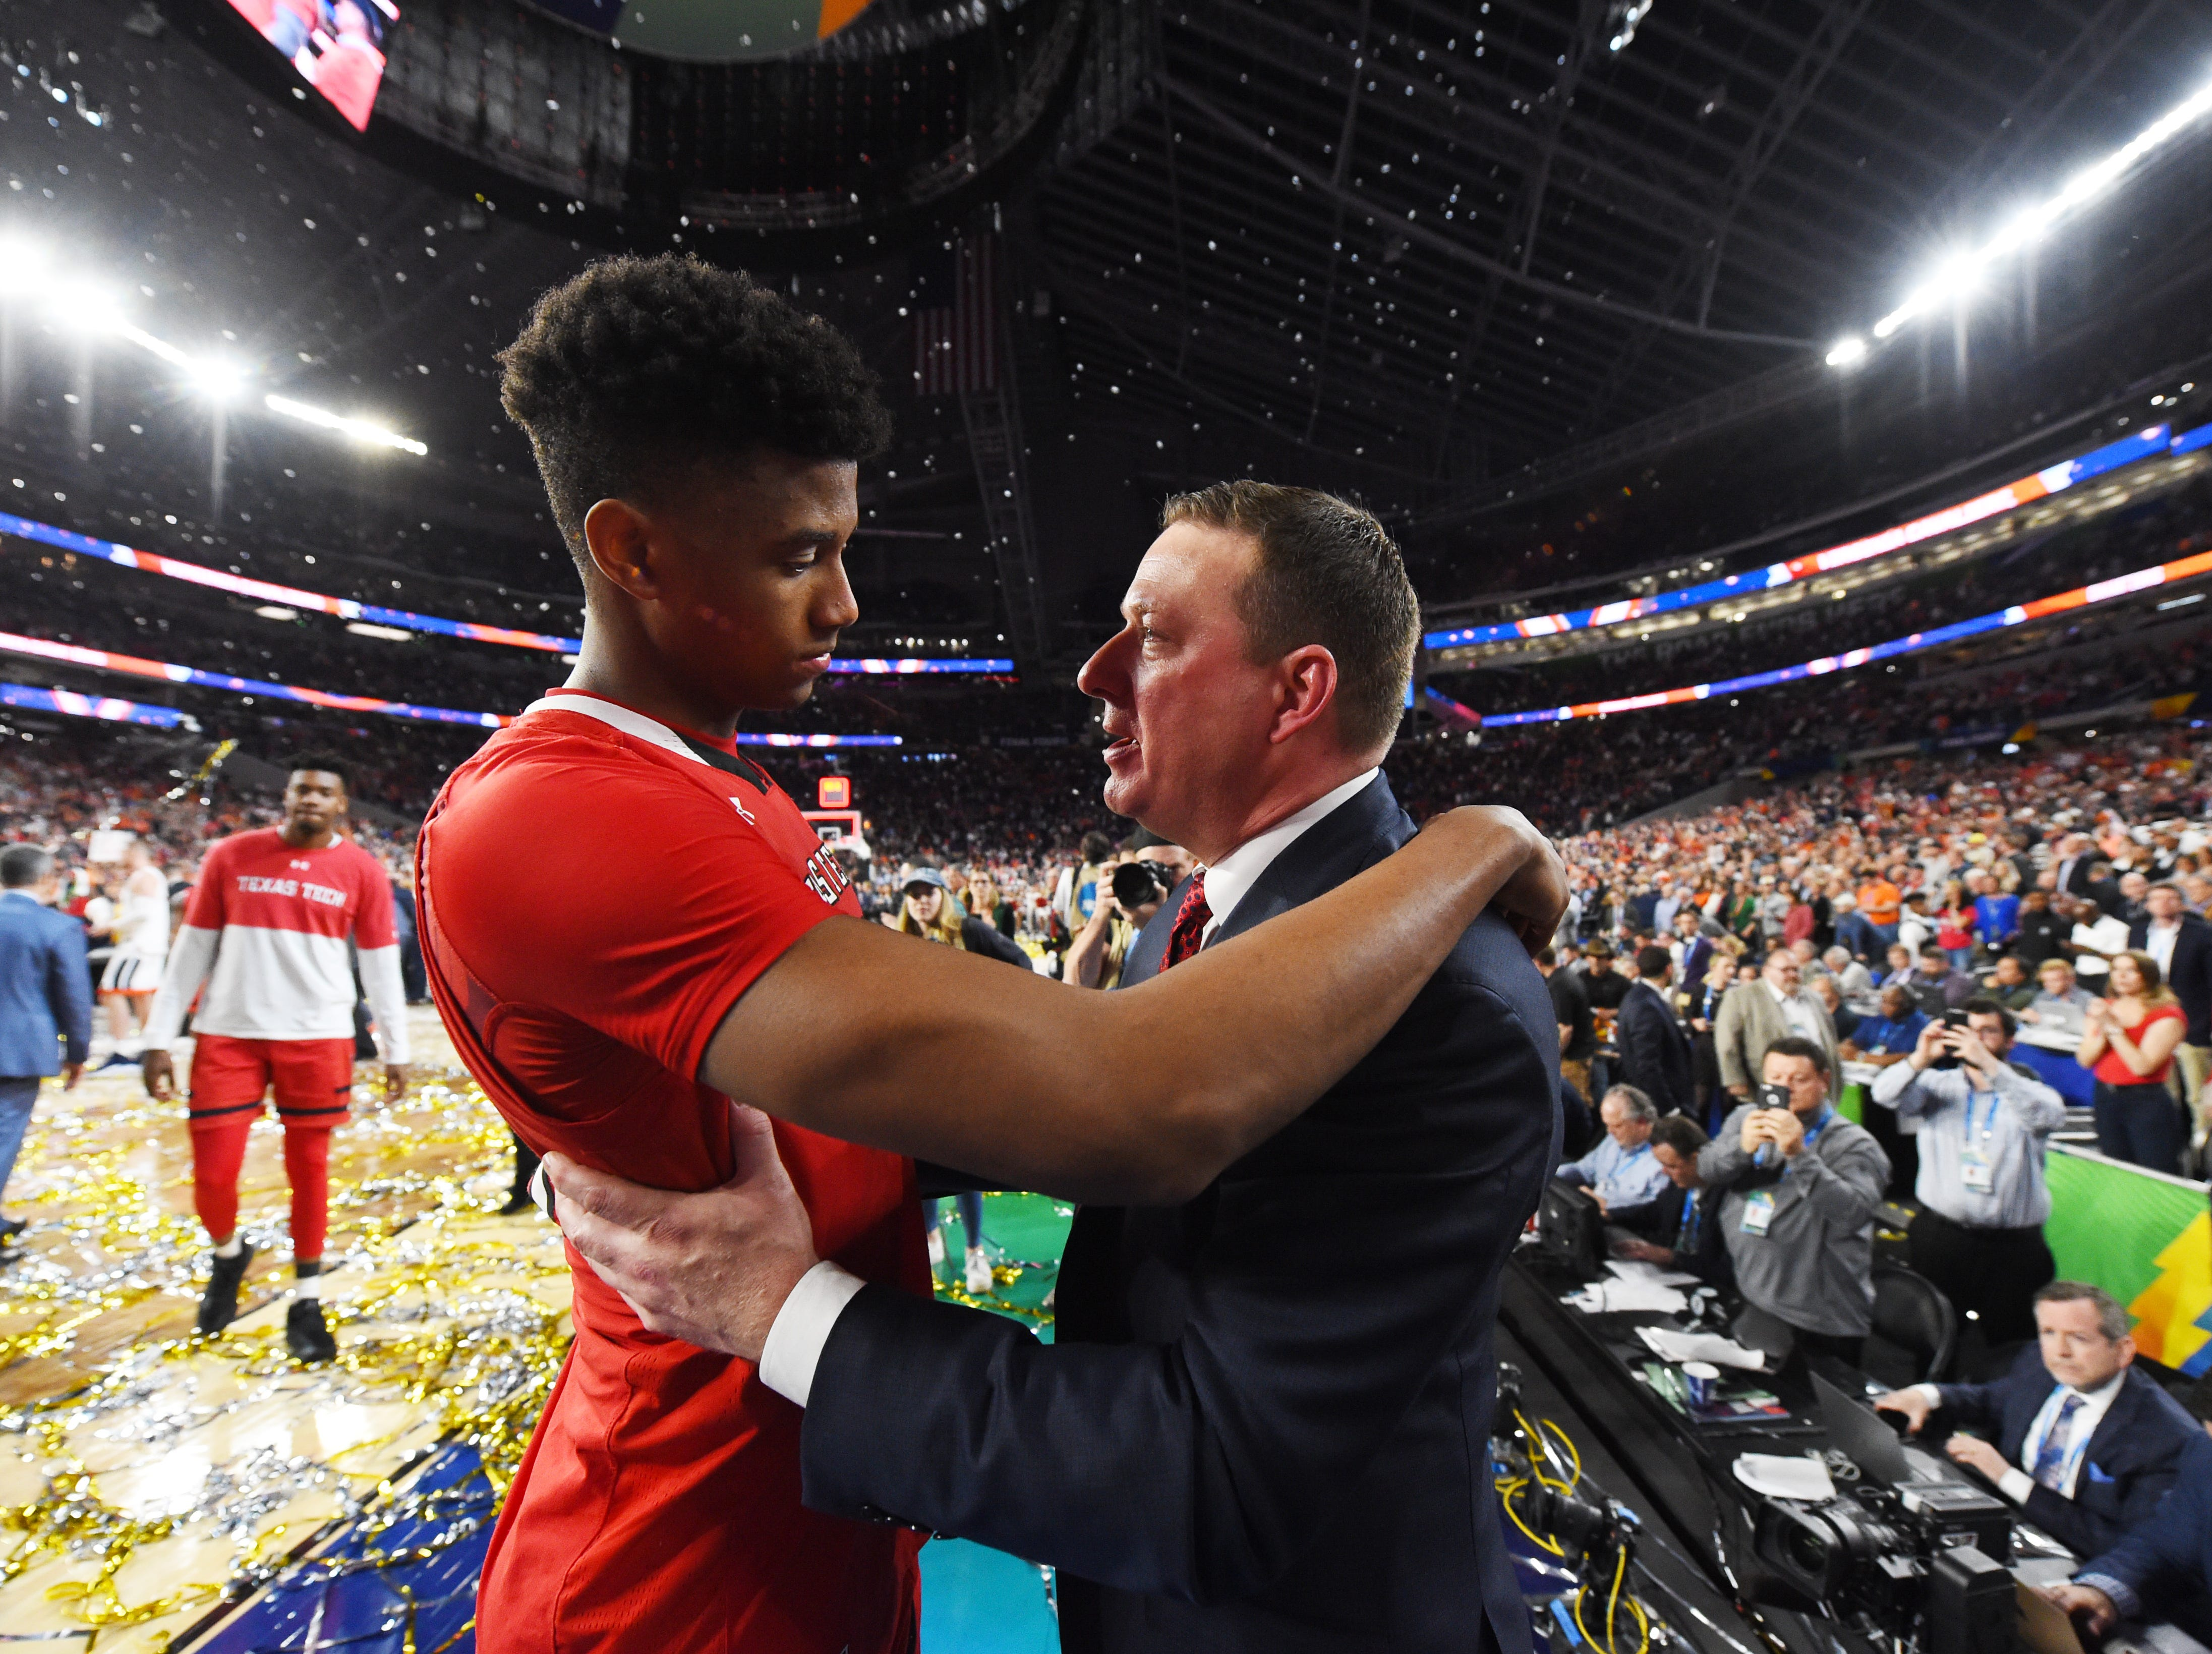 Apr 8, 2019; Minneapolis, MN, USA; Texas Tech Red Raiders head coach Chris Beard consoles guard Jarrett Culver (23) after losing to the Virginia Cavaliers in the championship game of the 2019 men's Final Four at US Bank Stadium. Mandatory Credit: Robert Deutsch-USA TODAY Sports